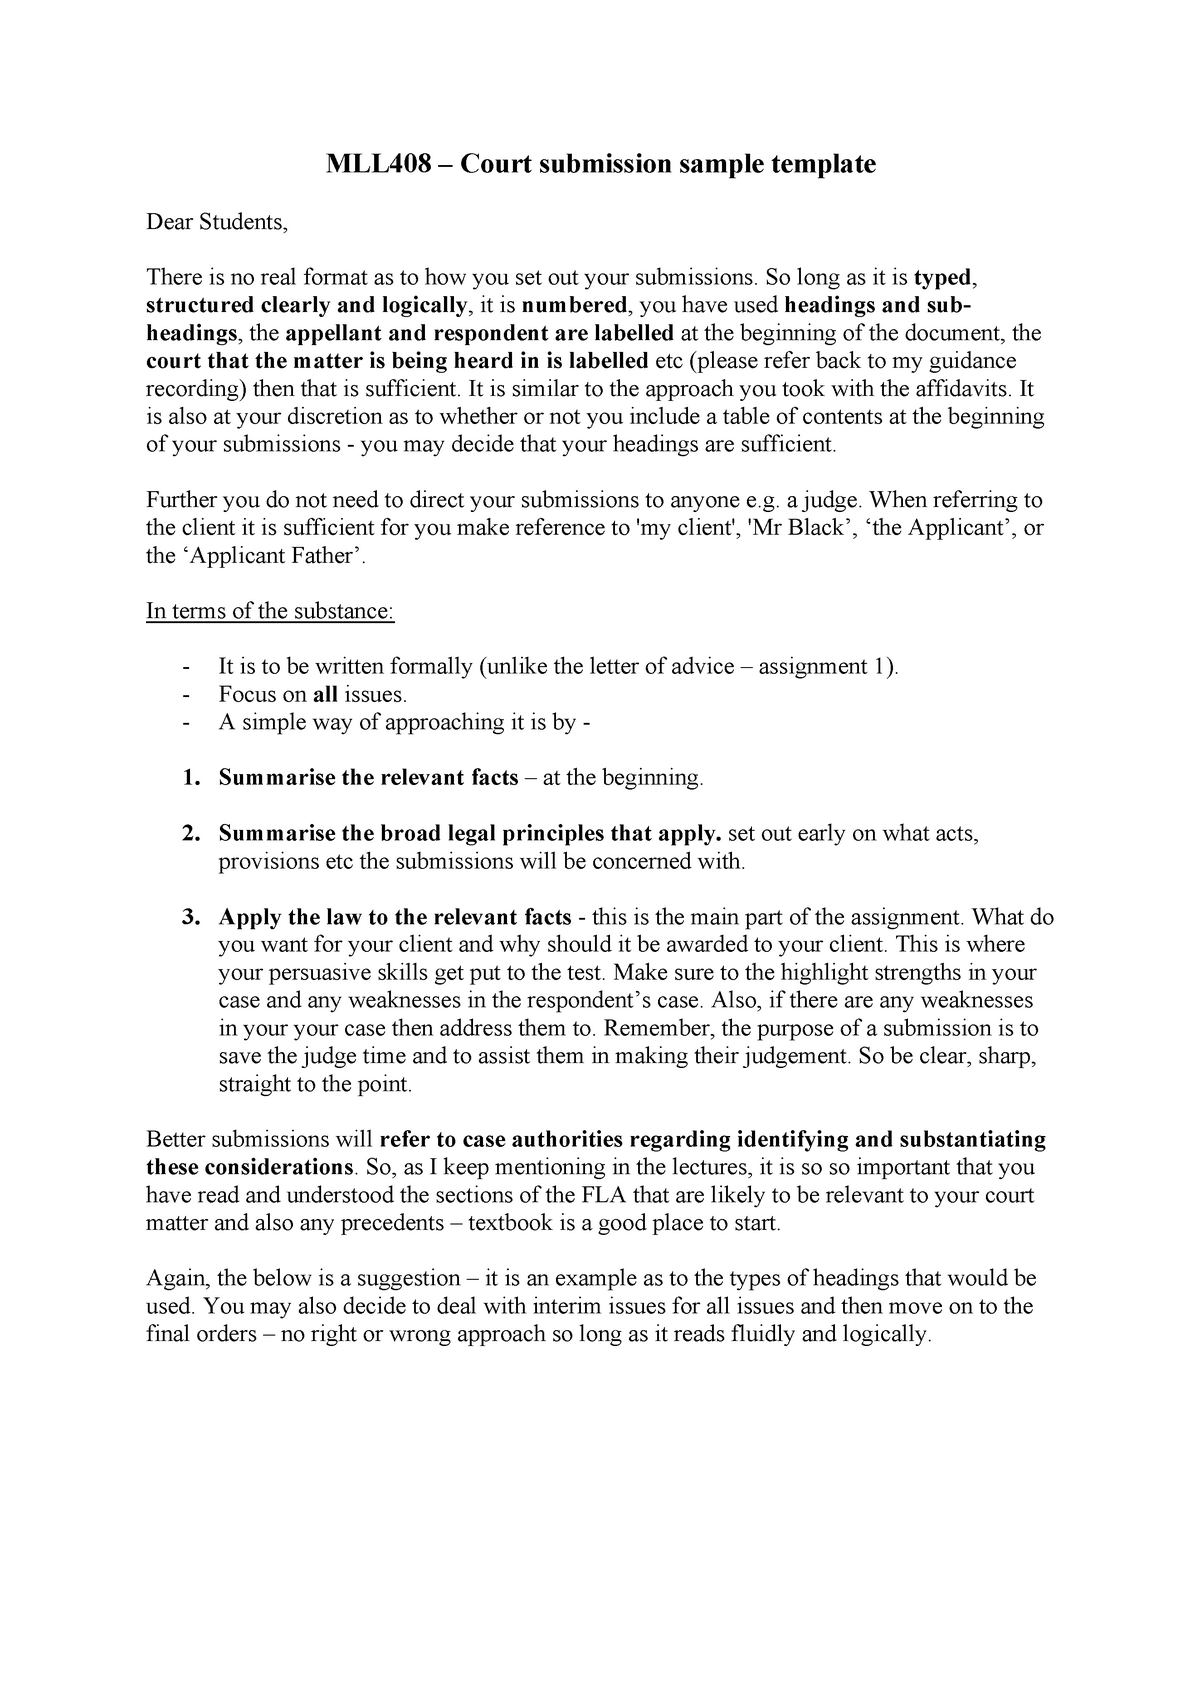 Letter Format To A Judge from d20ohkaloyme4g.cloudfront.net